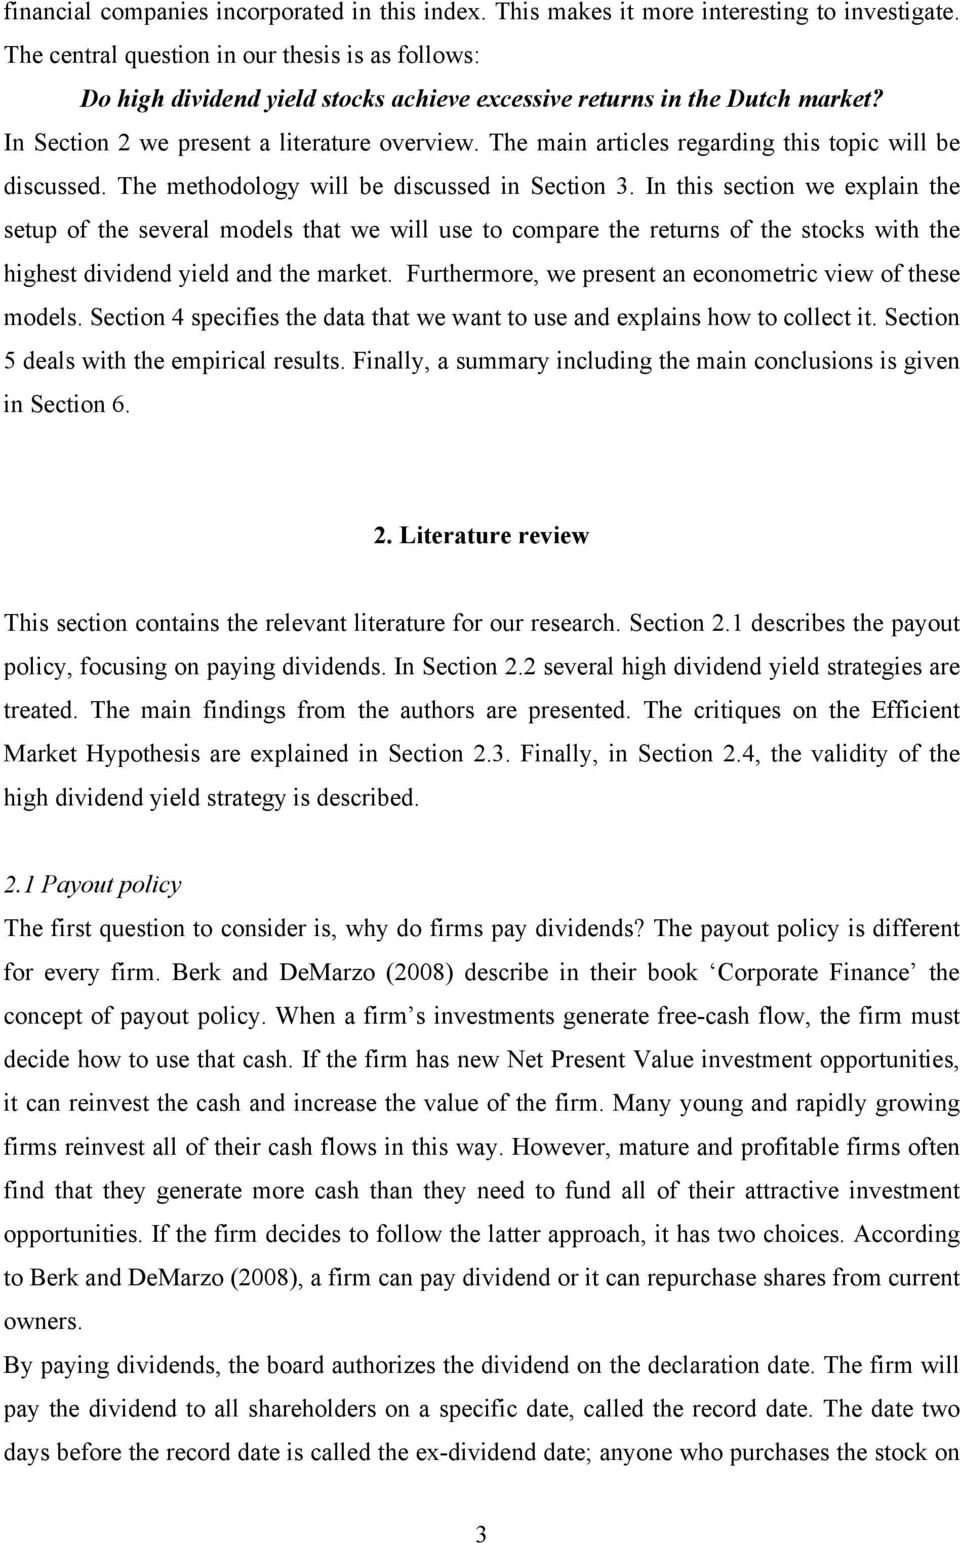 literature review on dividend policy